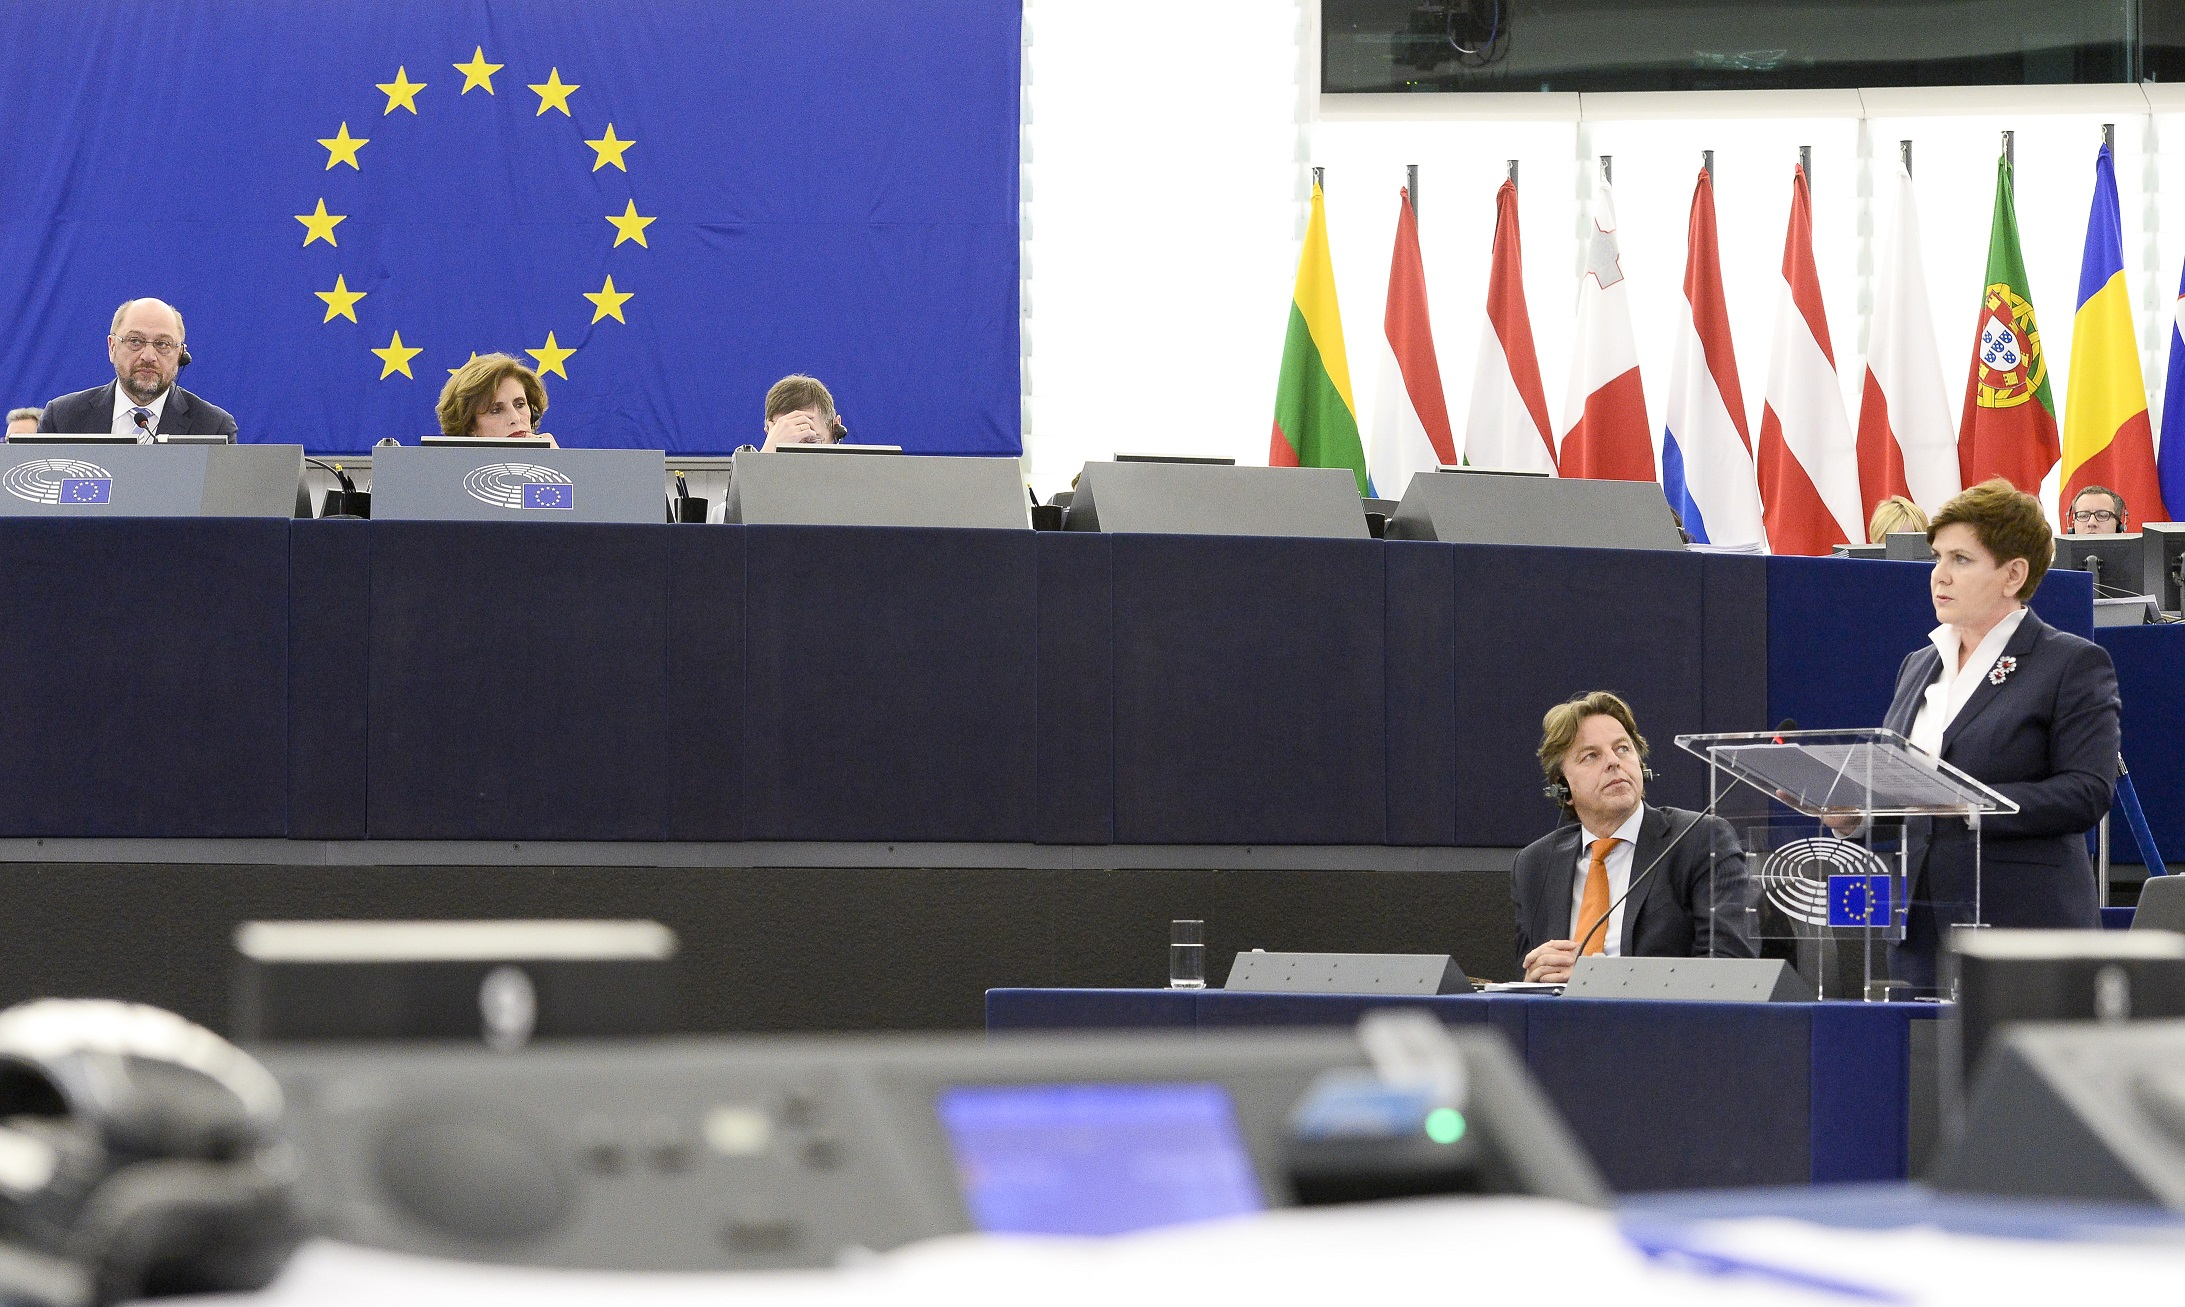 Plenary session week 03 2016 - Situation in Poland.